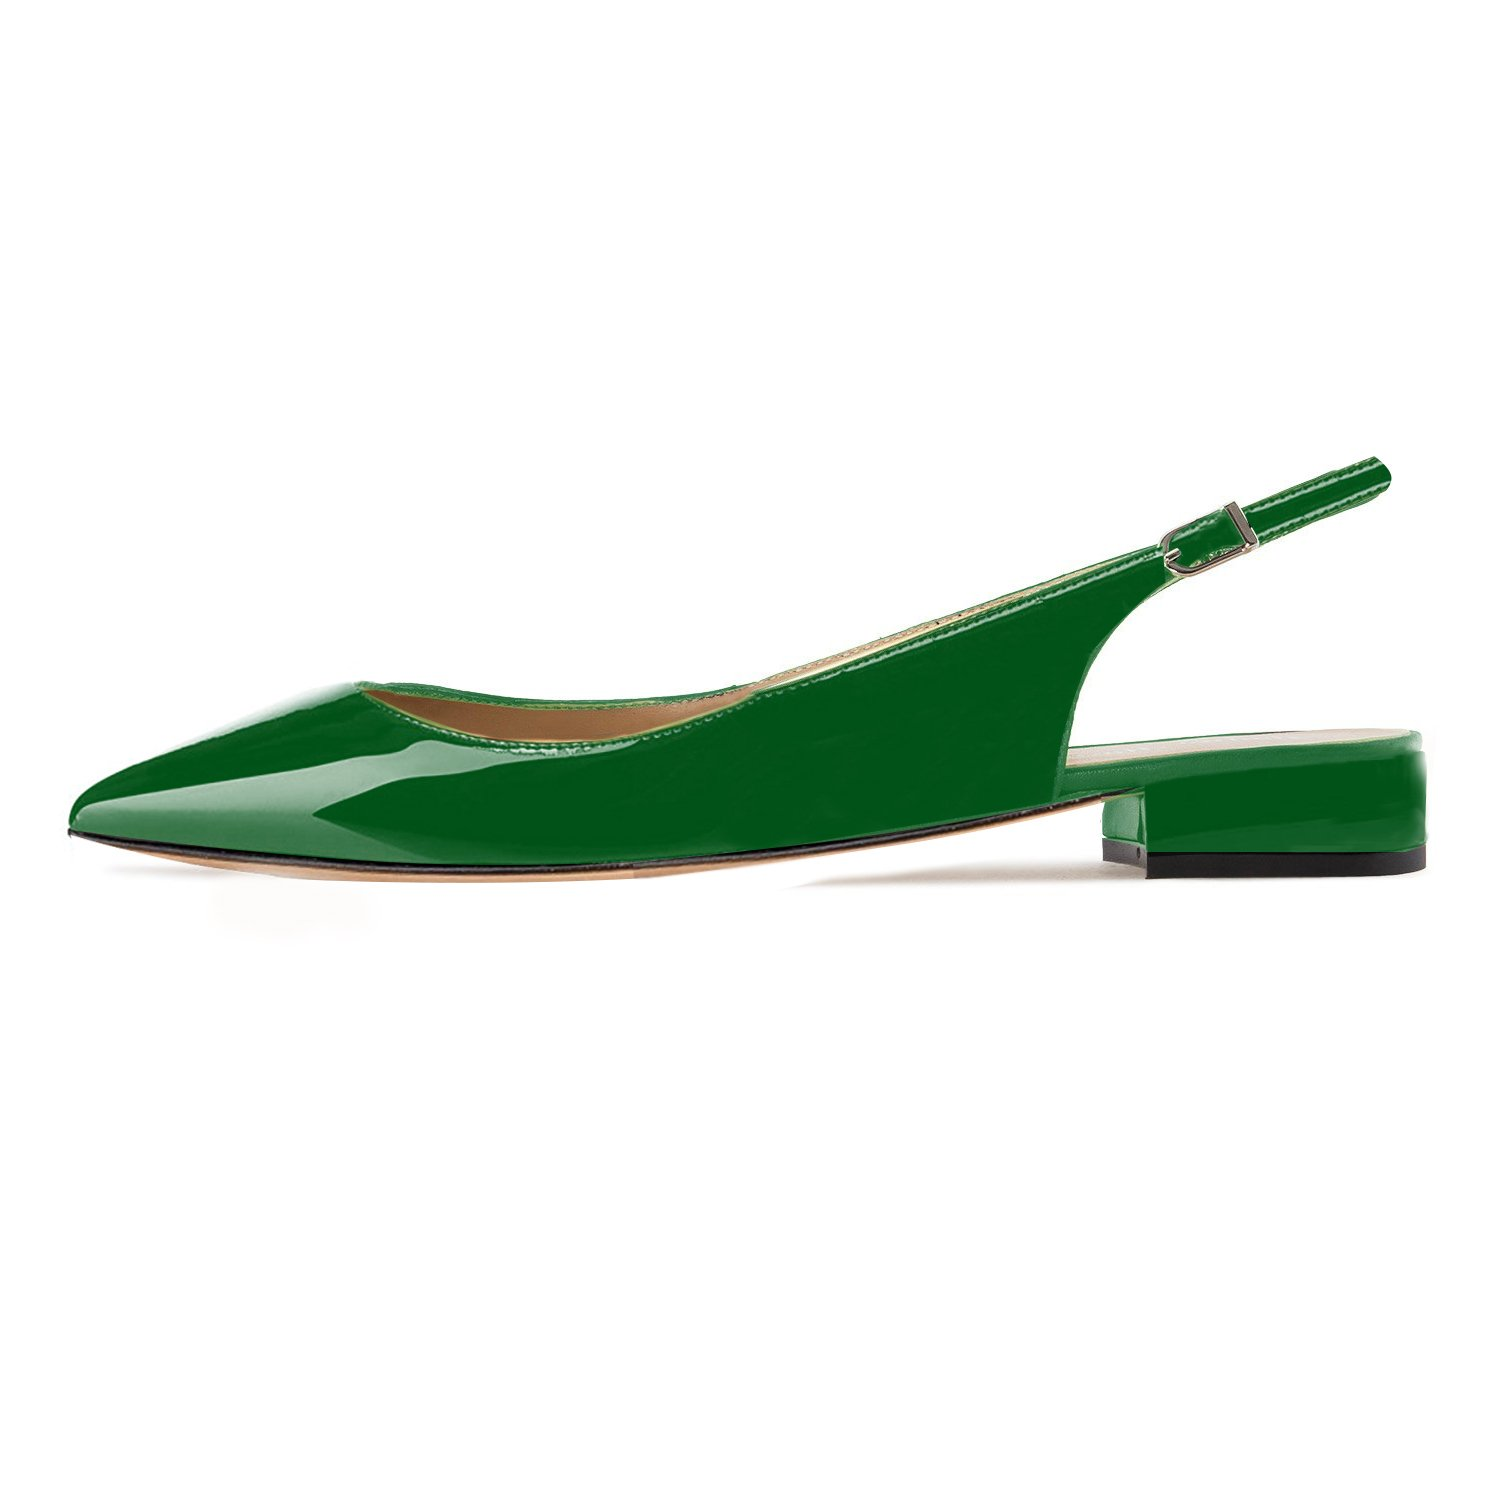 Eldof Women Pointed Low Heels Pumps | Pointed Women Toe Slingback Flat Pumps | 2cm Classic Elegante Court Shoes B07C4YCDJ2 6 B(M) US|Patent Green 5142c7